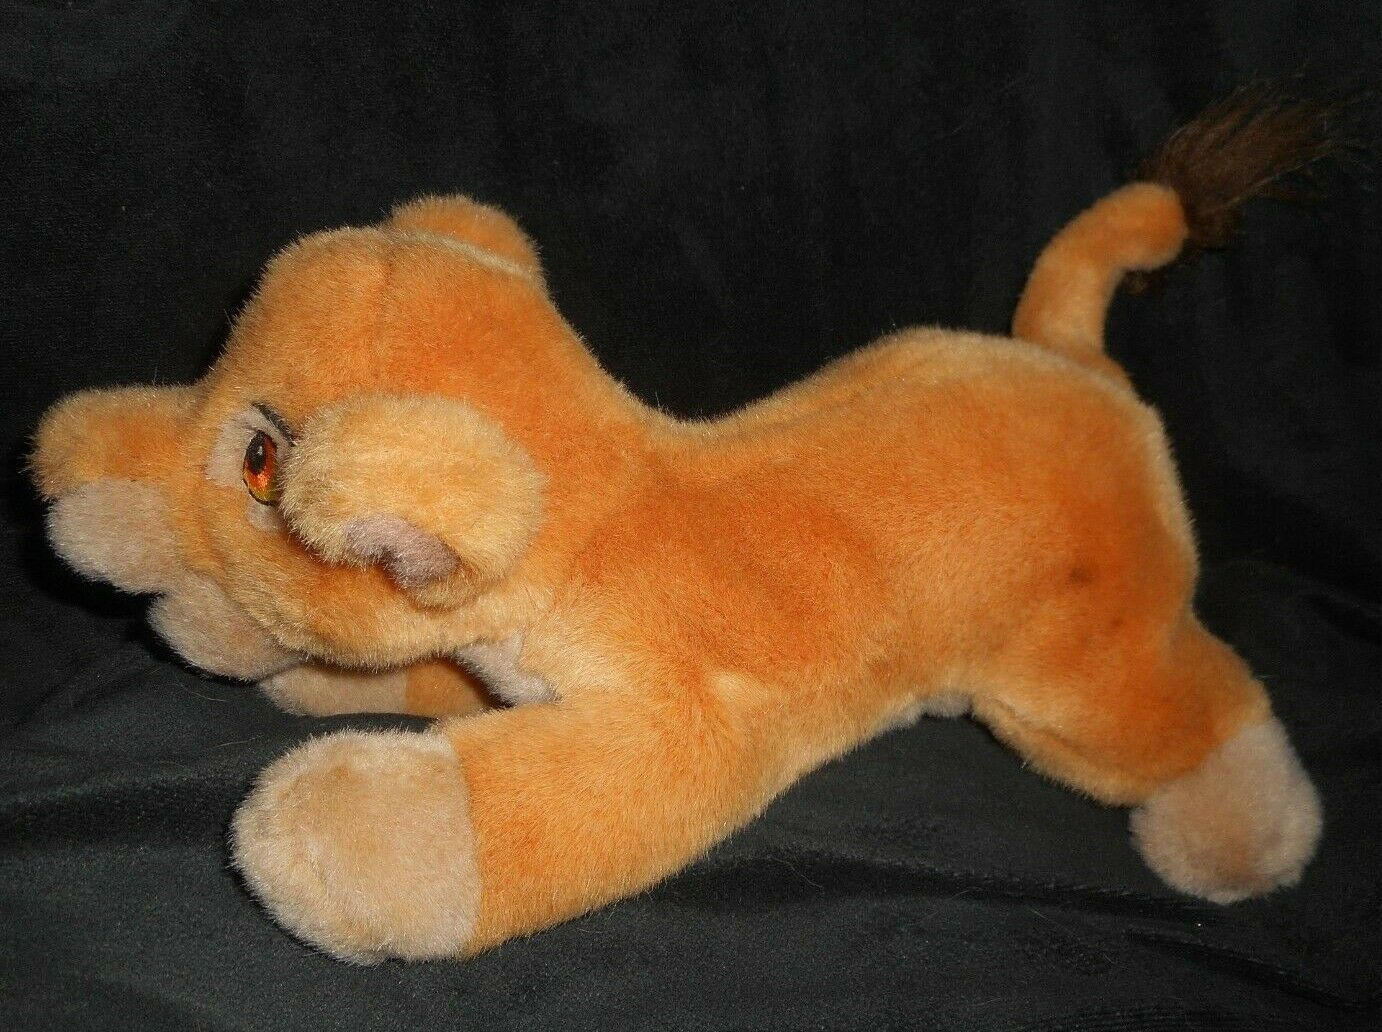 DISNEY VINTAGE THE LION KING SIMBAS PRIDE KIARA CUB STUFFED ANIMAL PLUSH TOY